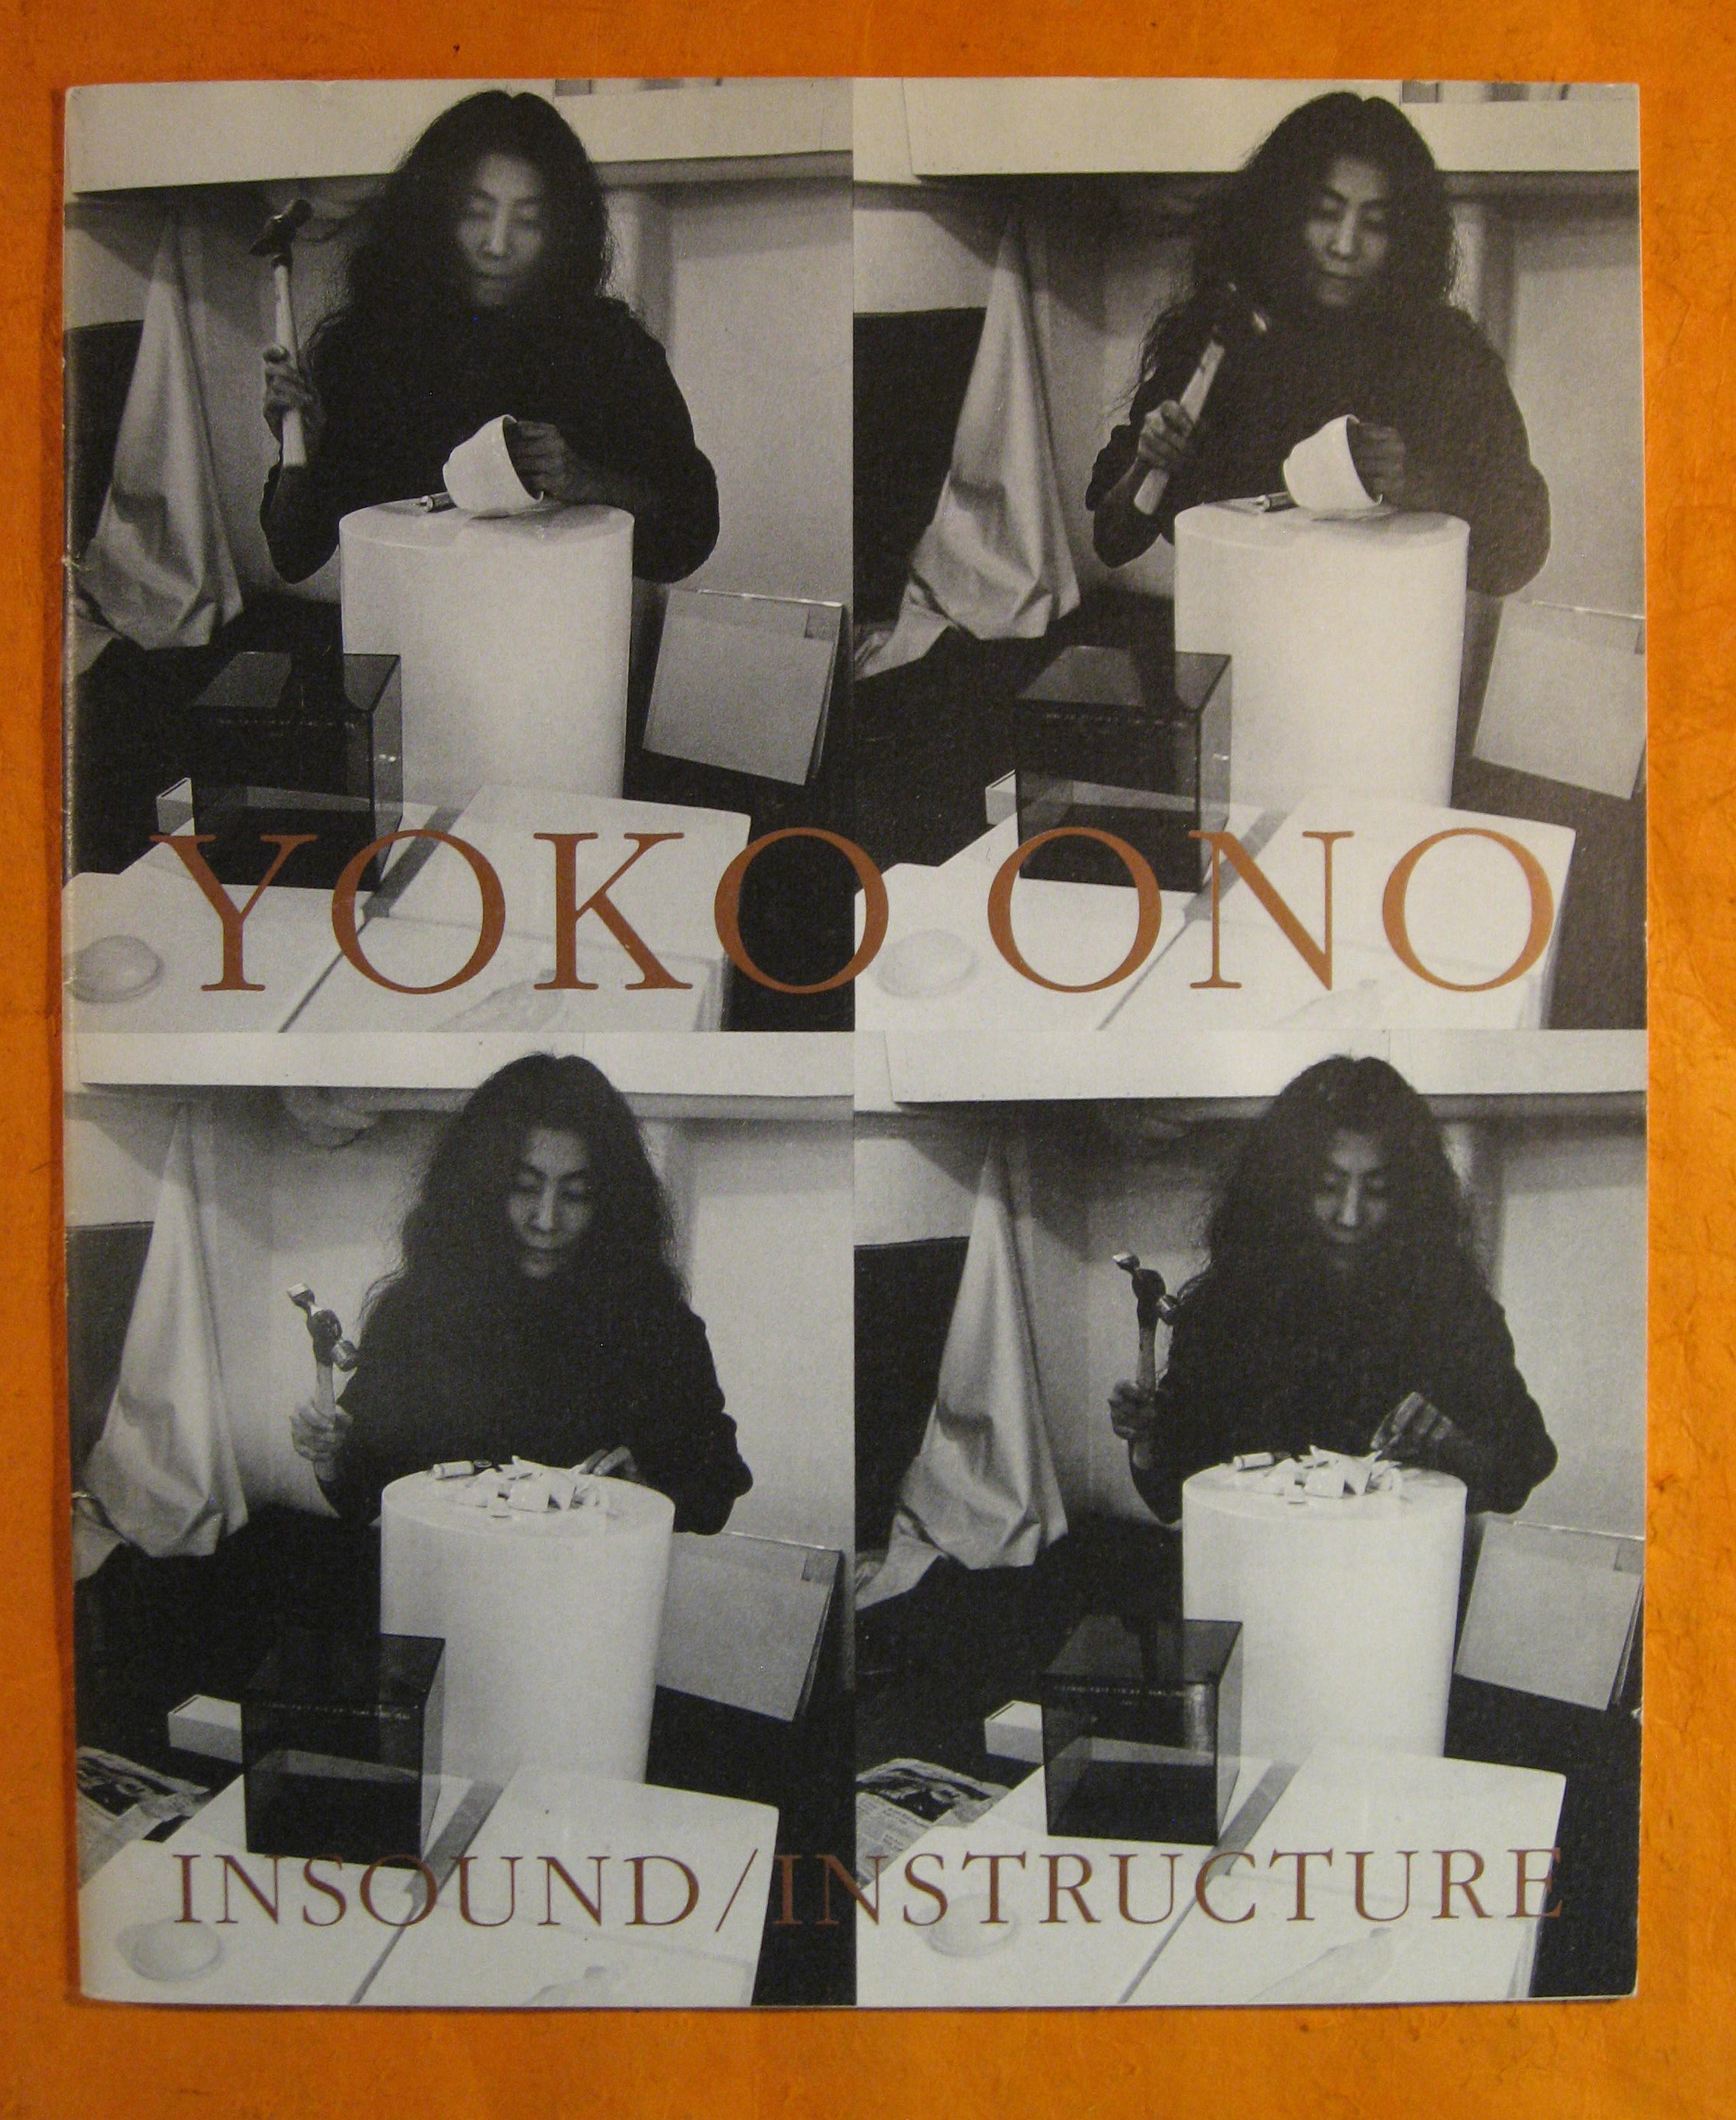 Yoko Ono:  Insound/Instructure